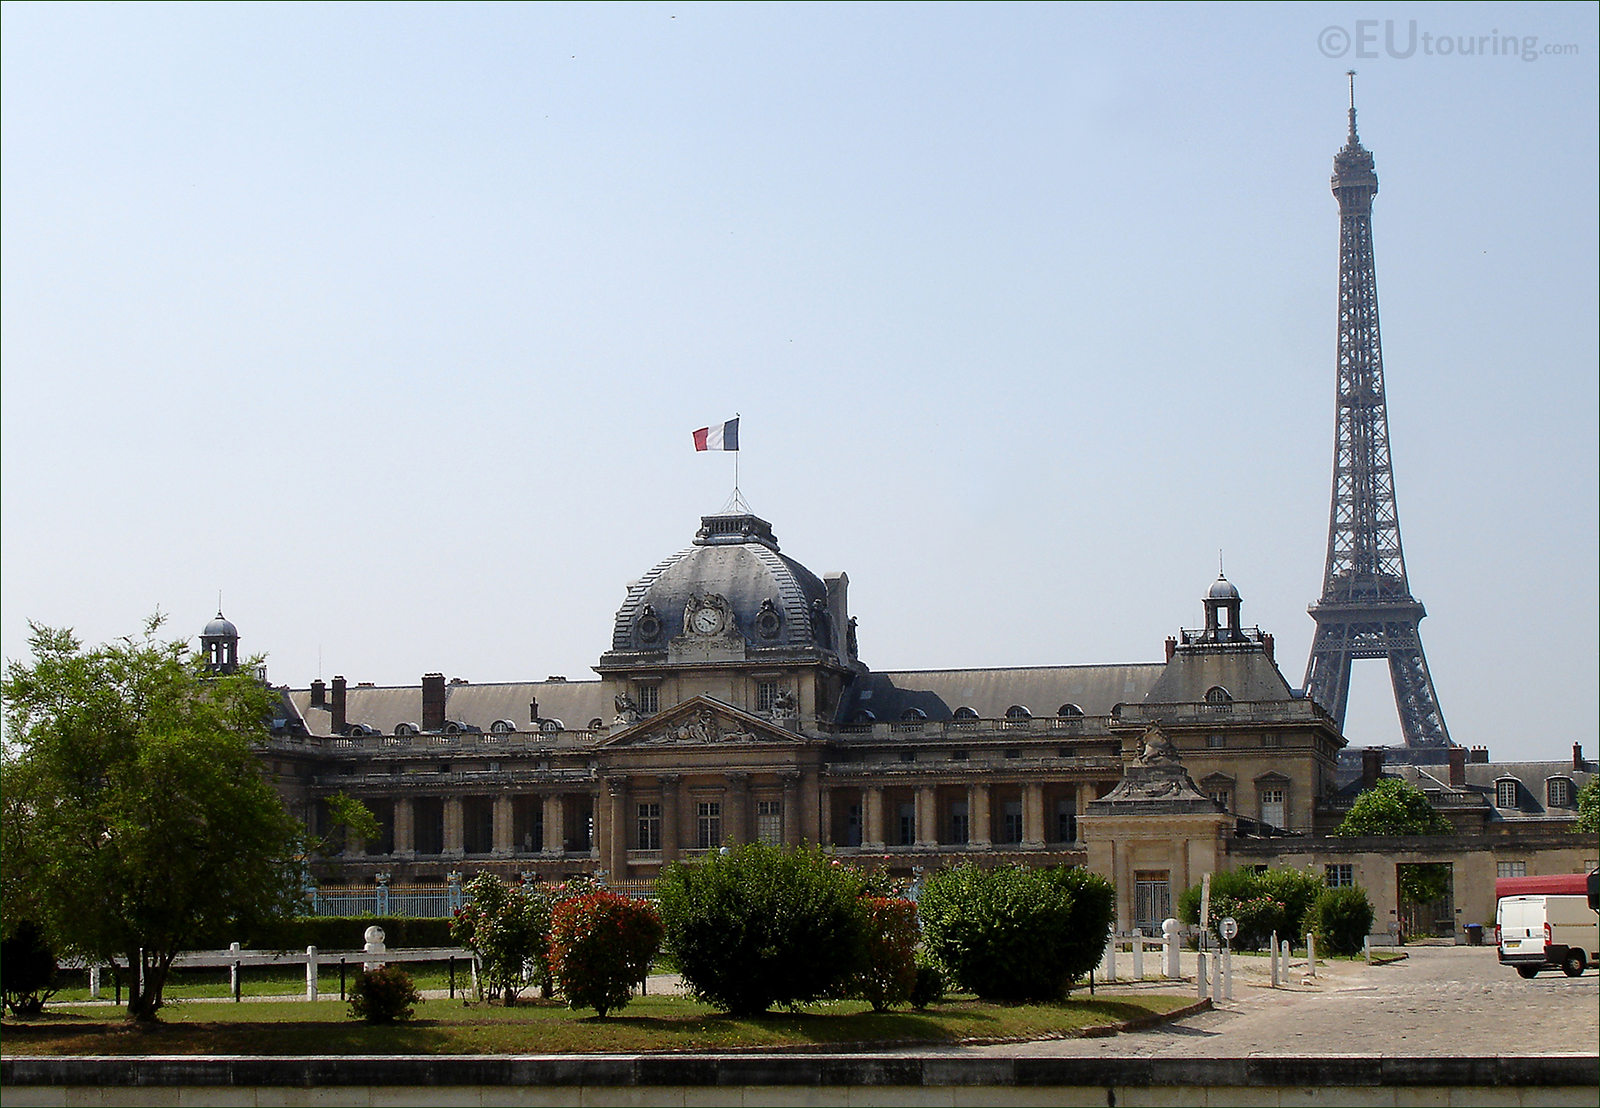 Hd Photos Of The Ecole Militaire In Paris France Page 1